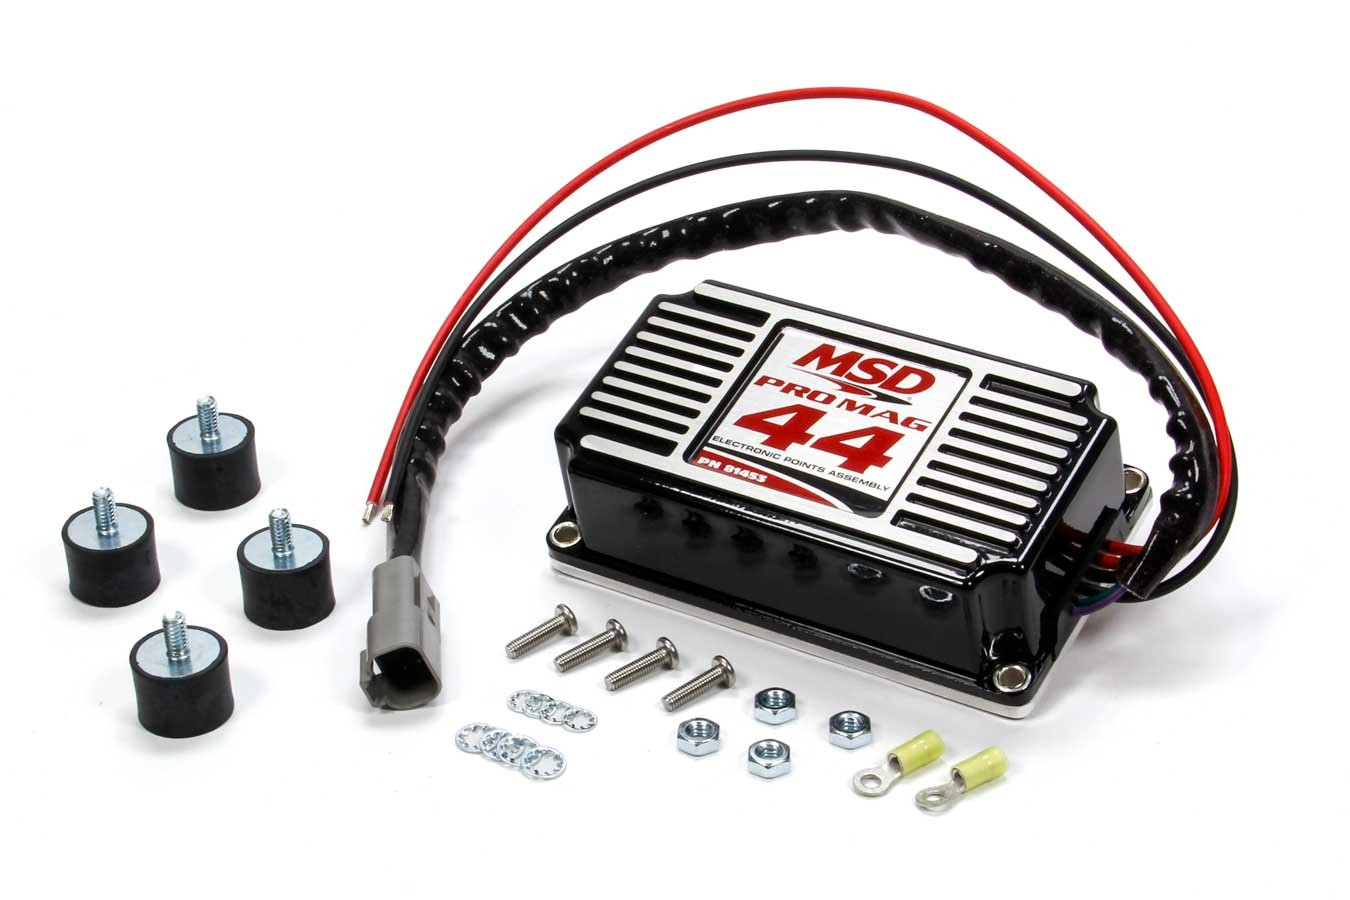 MSD Ignition 81453 Ignition Box, Pro Mag 44, Electronic Points Box, MSD Pro Mag 44, Black, Each